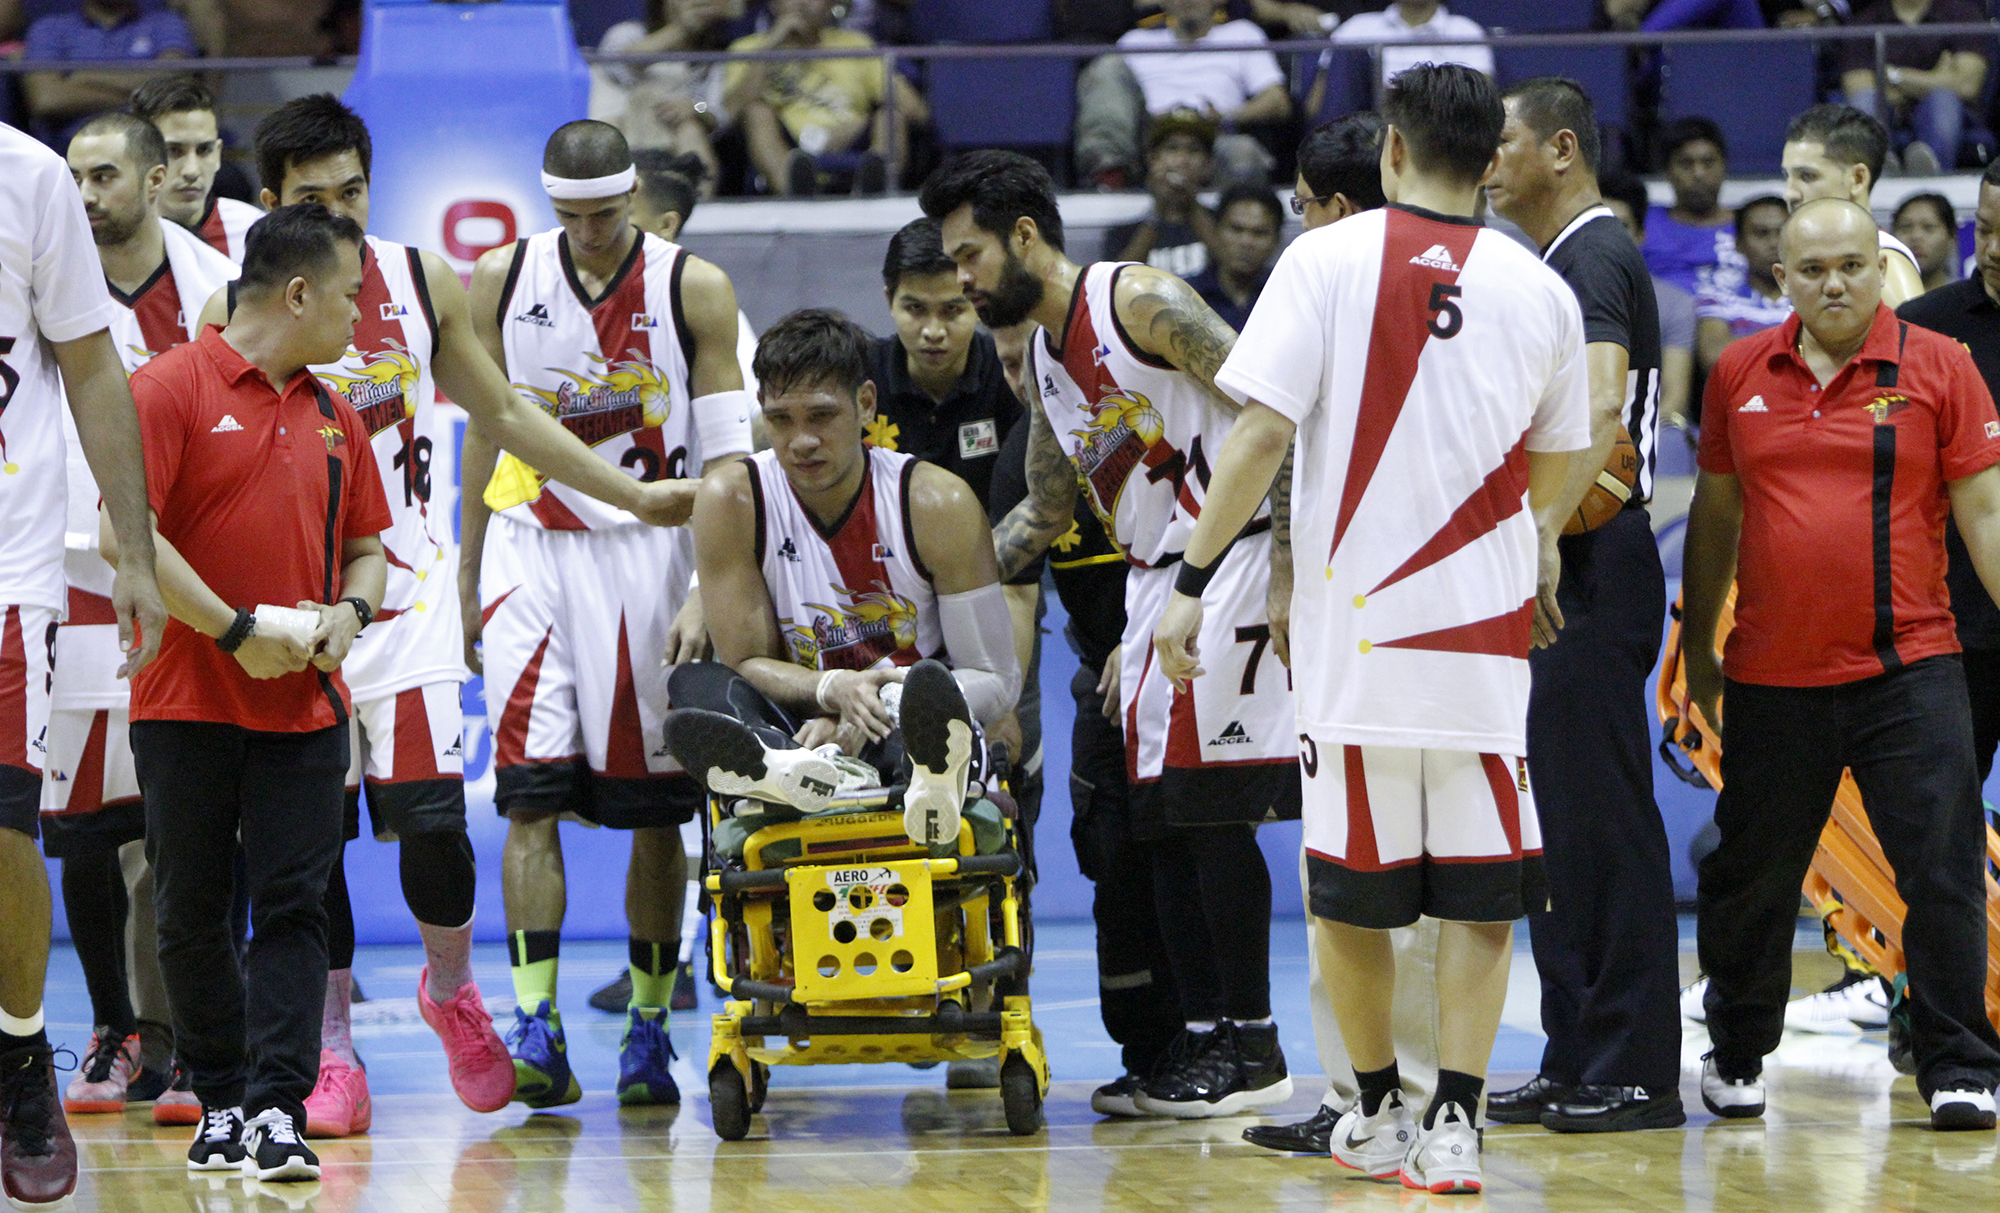 WILL FAJARDO PLAY IN THE FINALS? June Mar Fajardo suffers a knee injury ahead of the finals between San Miguel and Alaska in the 2016 PBA Philippine Cup. Photo courtesy of PBA Media Bureau